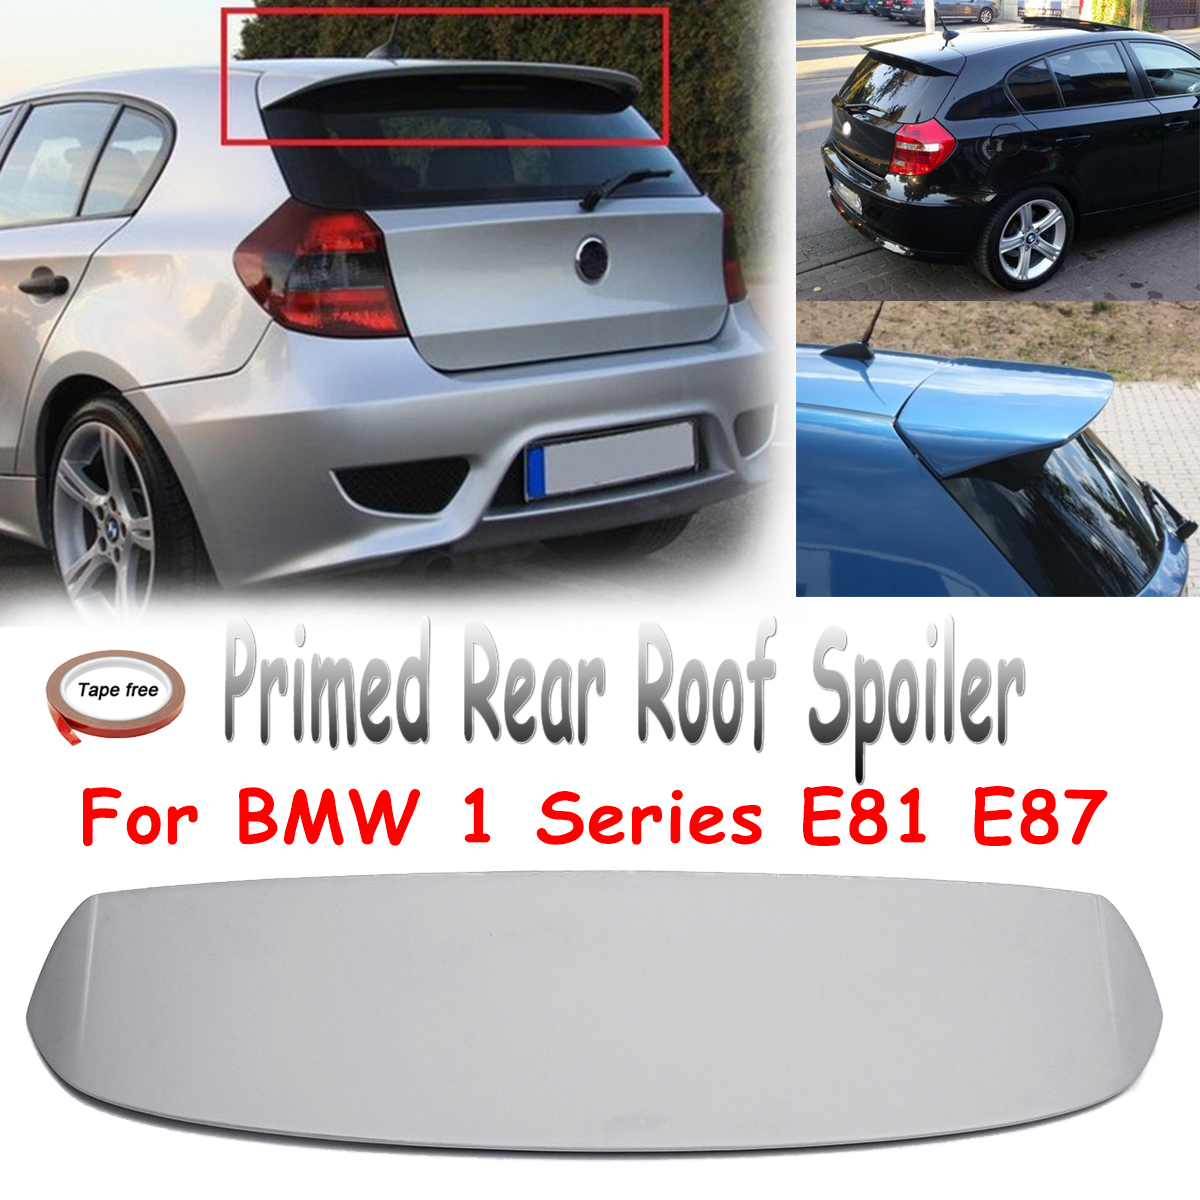 Spoiler Wing Fits for BMW 1 Series E81 E87 FRP Unpainted Primed Rear Trunk Roof Lip Trunk Spoiler Fiberglass Wing unpainted frp rear roof spoiler lip wing for audi q7 2006 2008 abt style